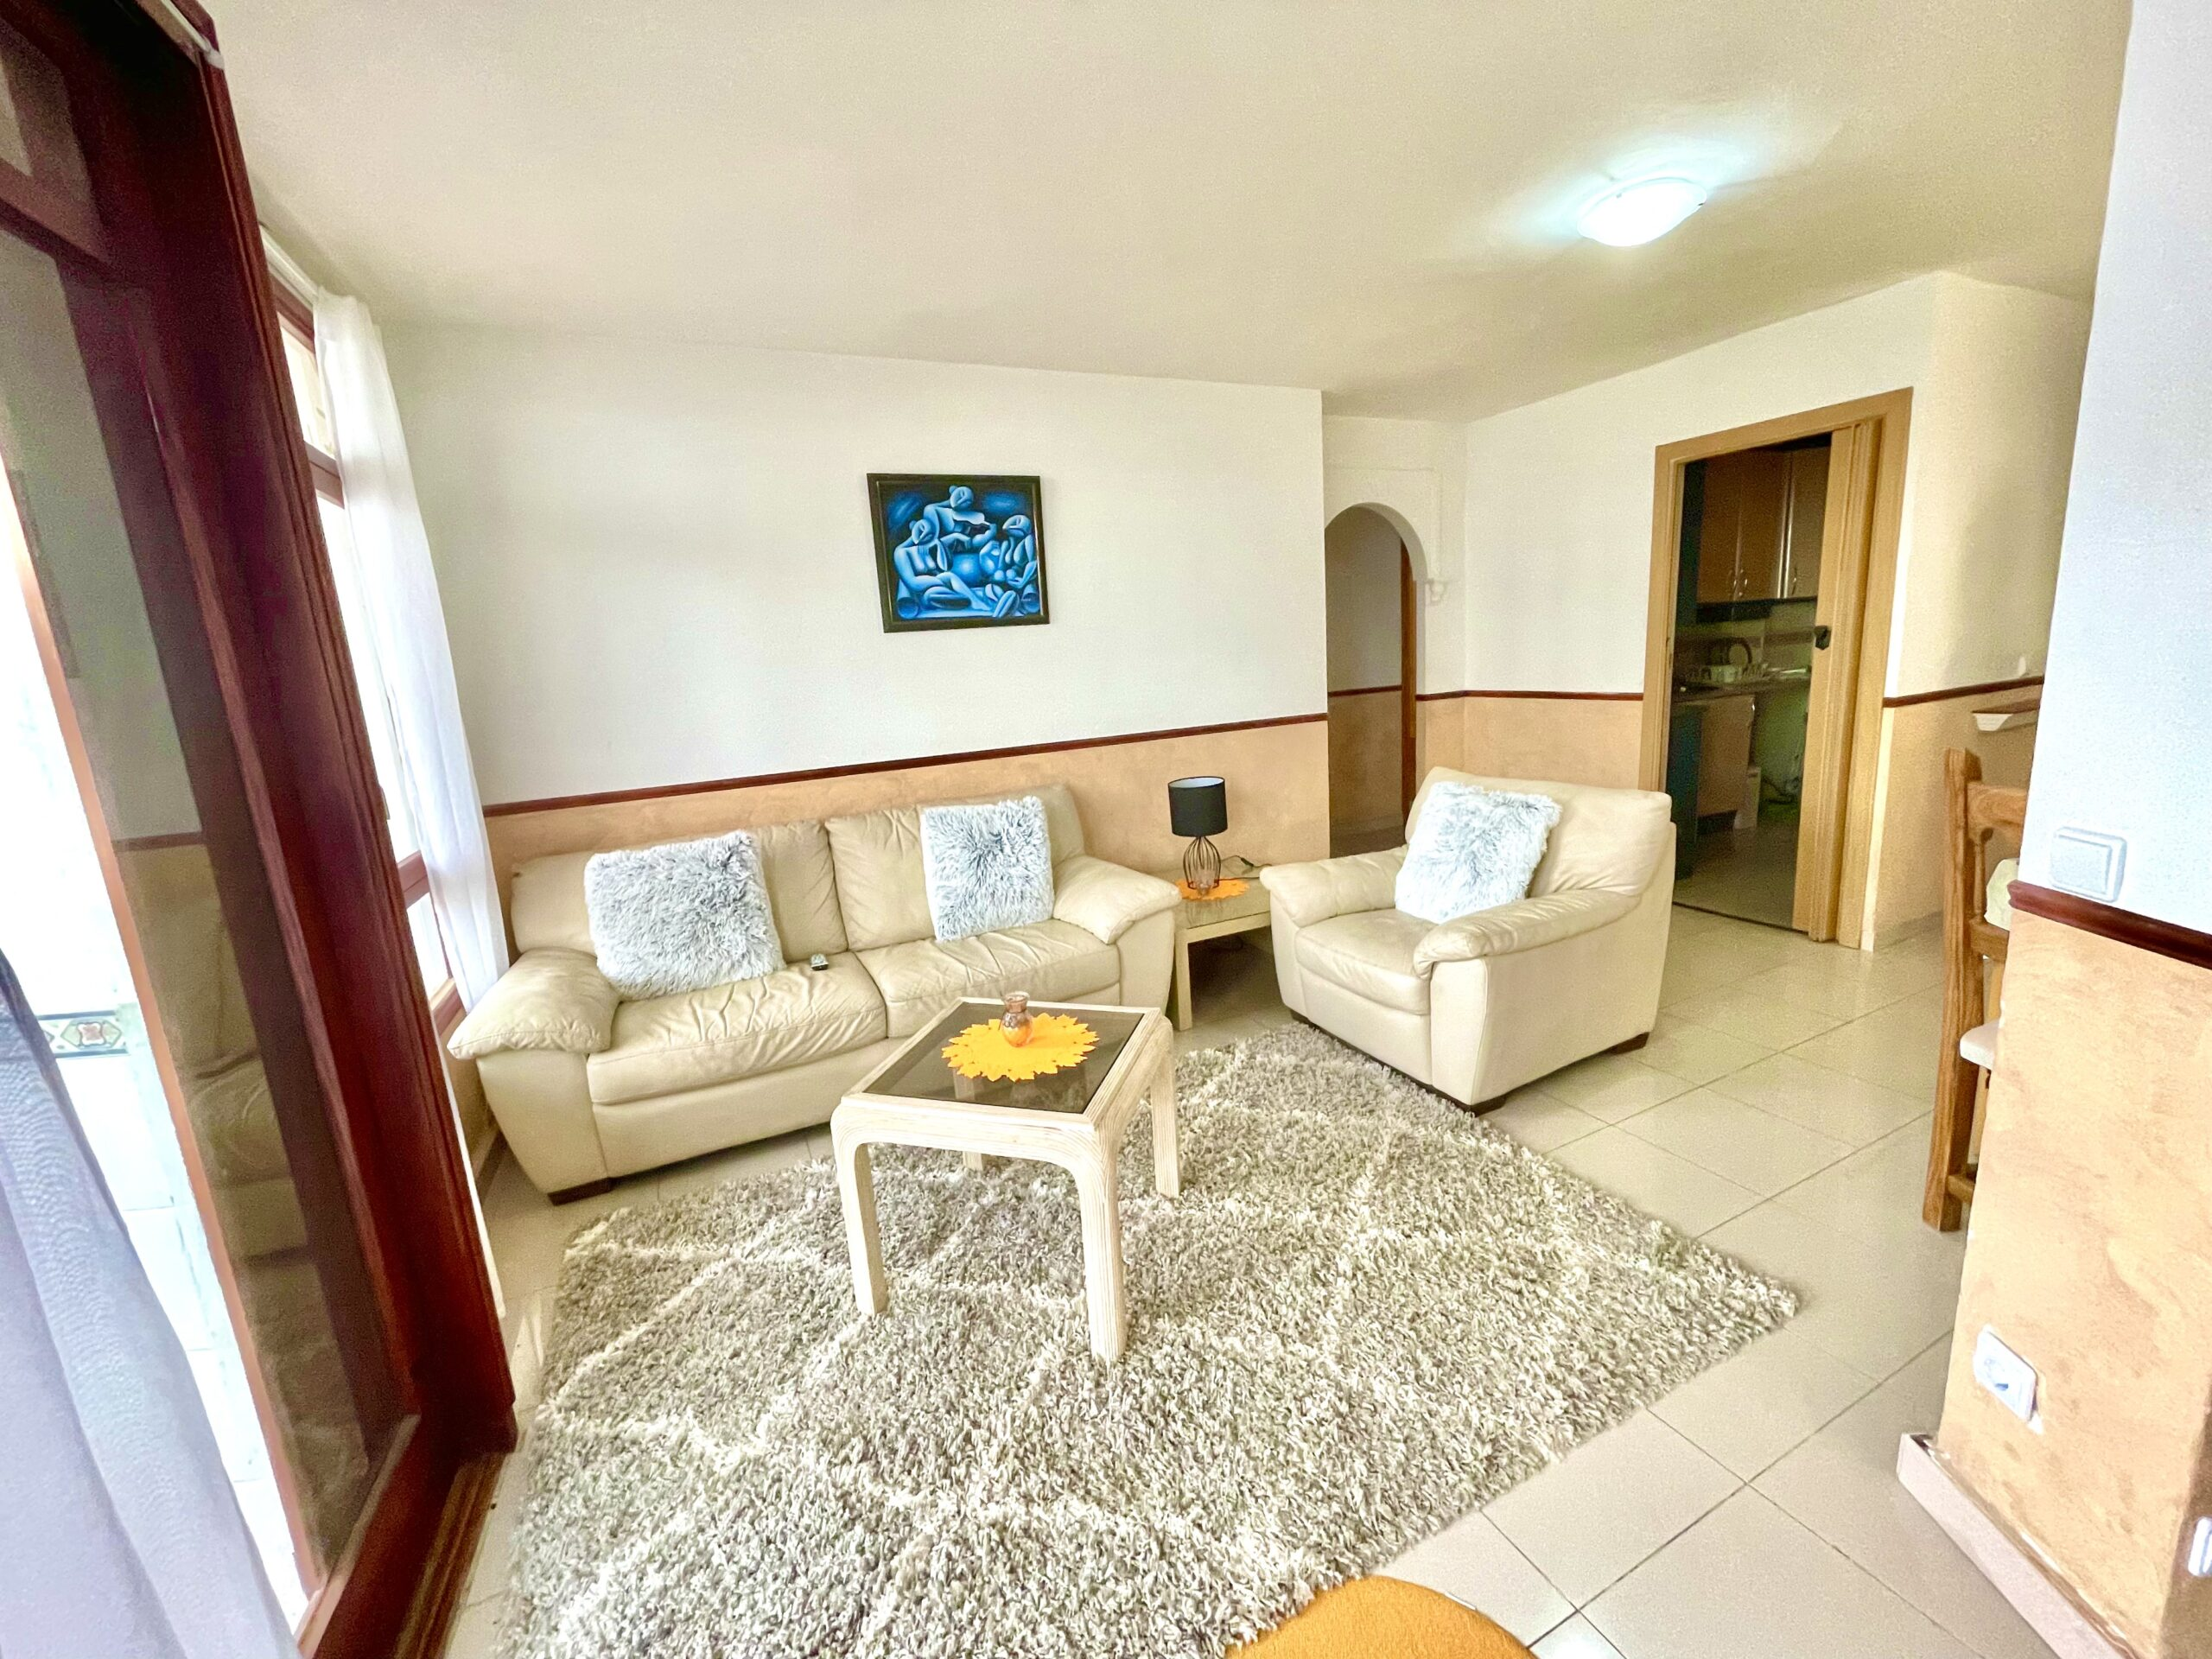 Amazing opportunity of 2 bedrooms apartment @Magaluf